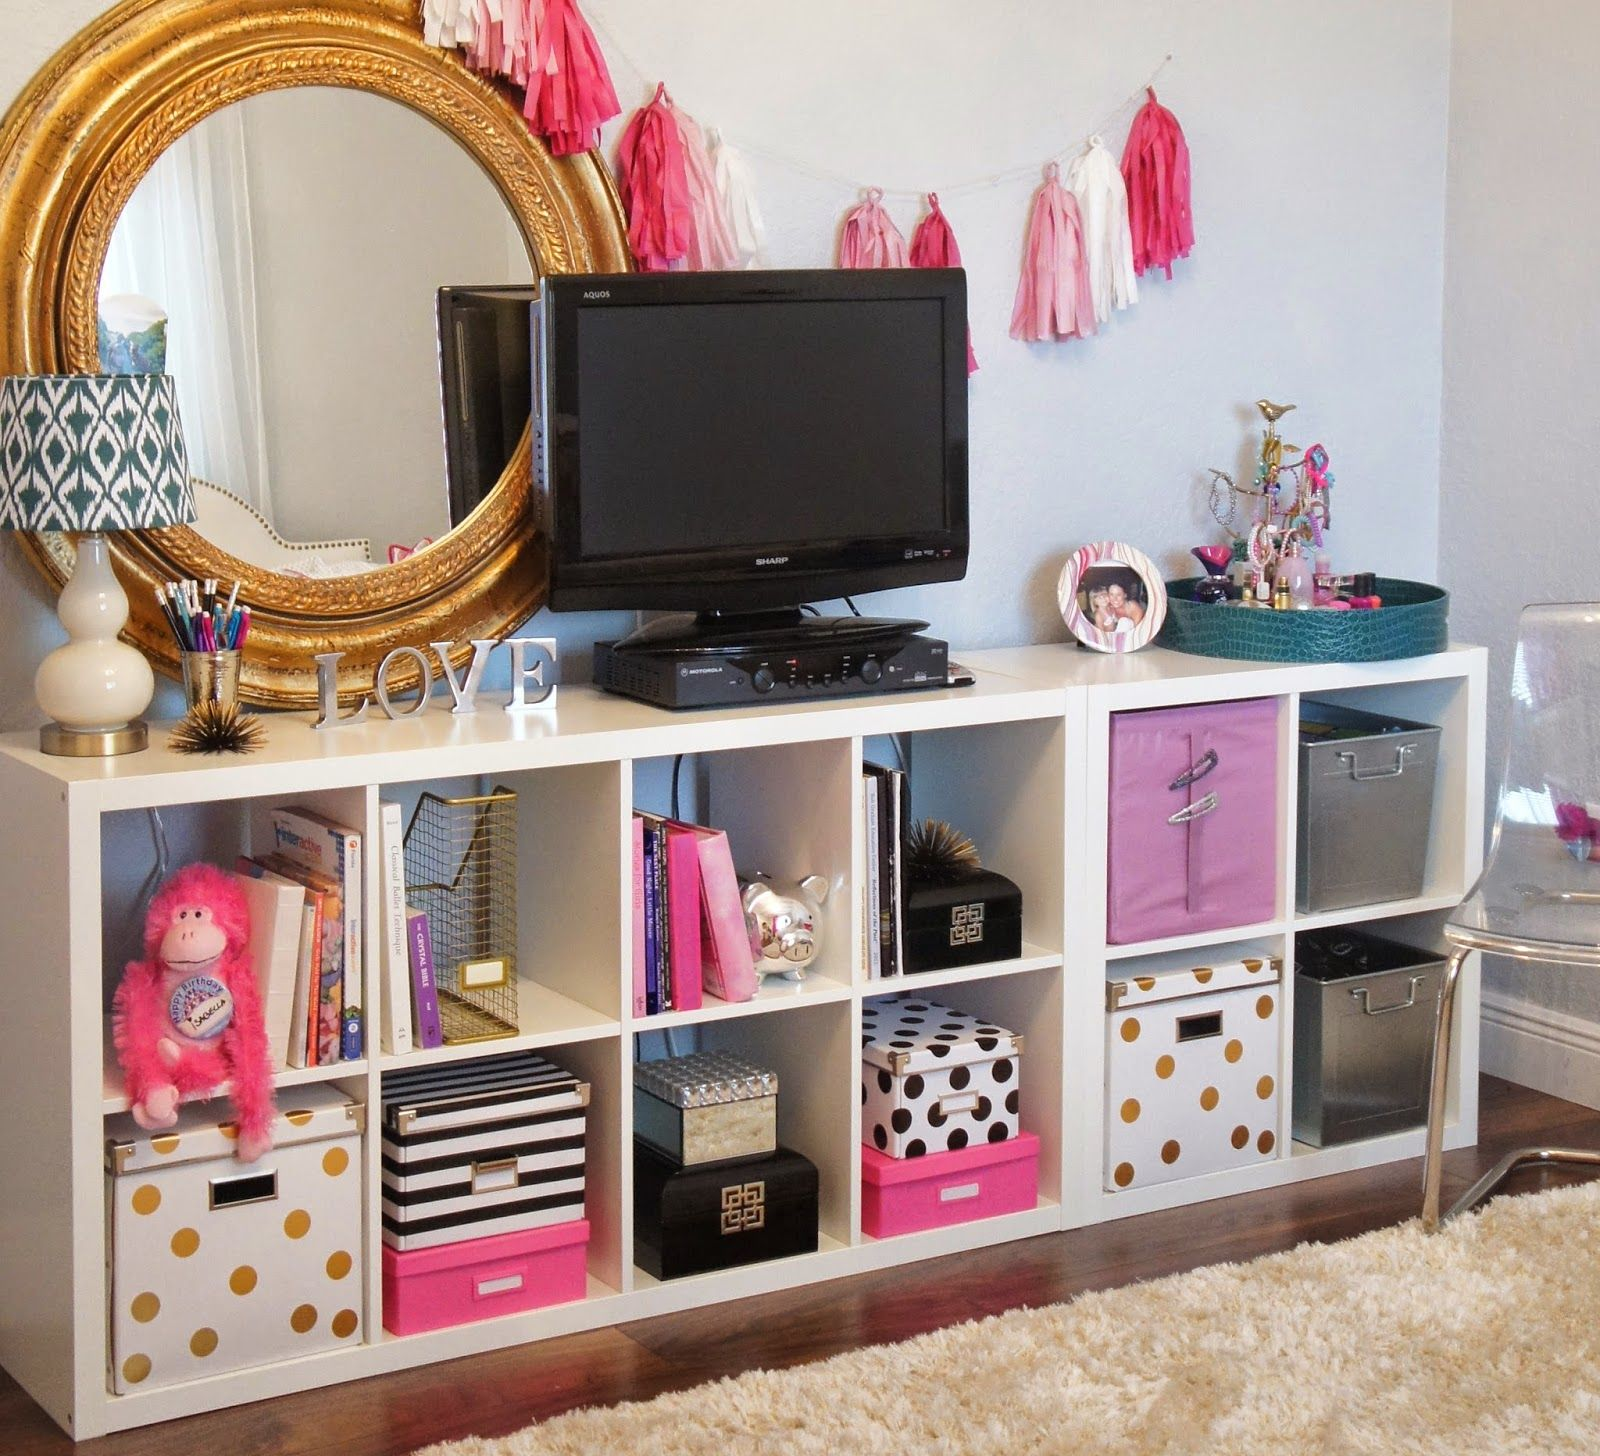 Elegant Ikea Expedit Decor, DIY Kate Spade Inspired Ikea Storage Boxes, Kids Room  Decor,